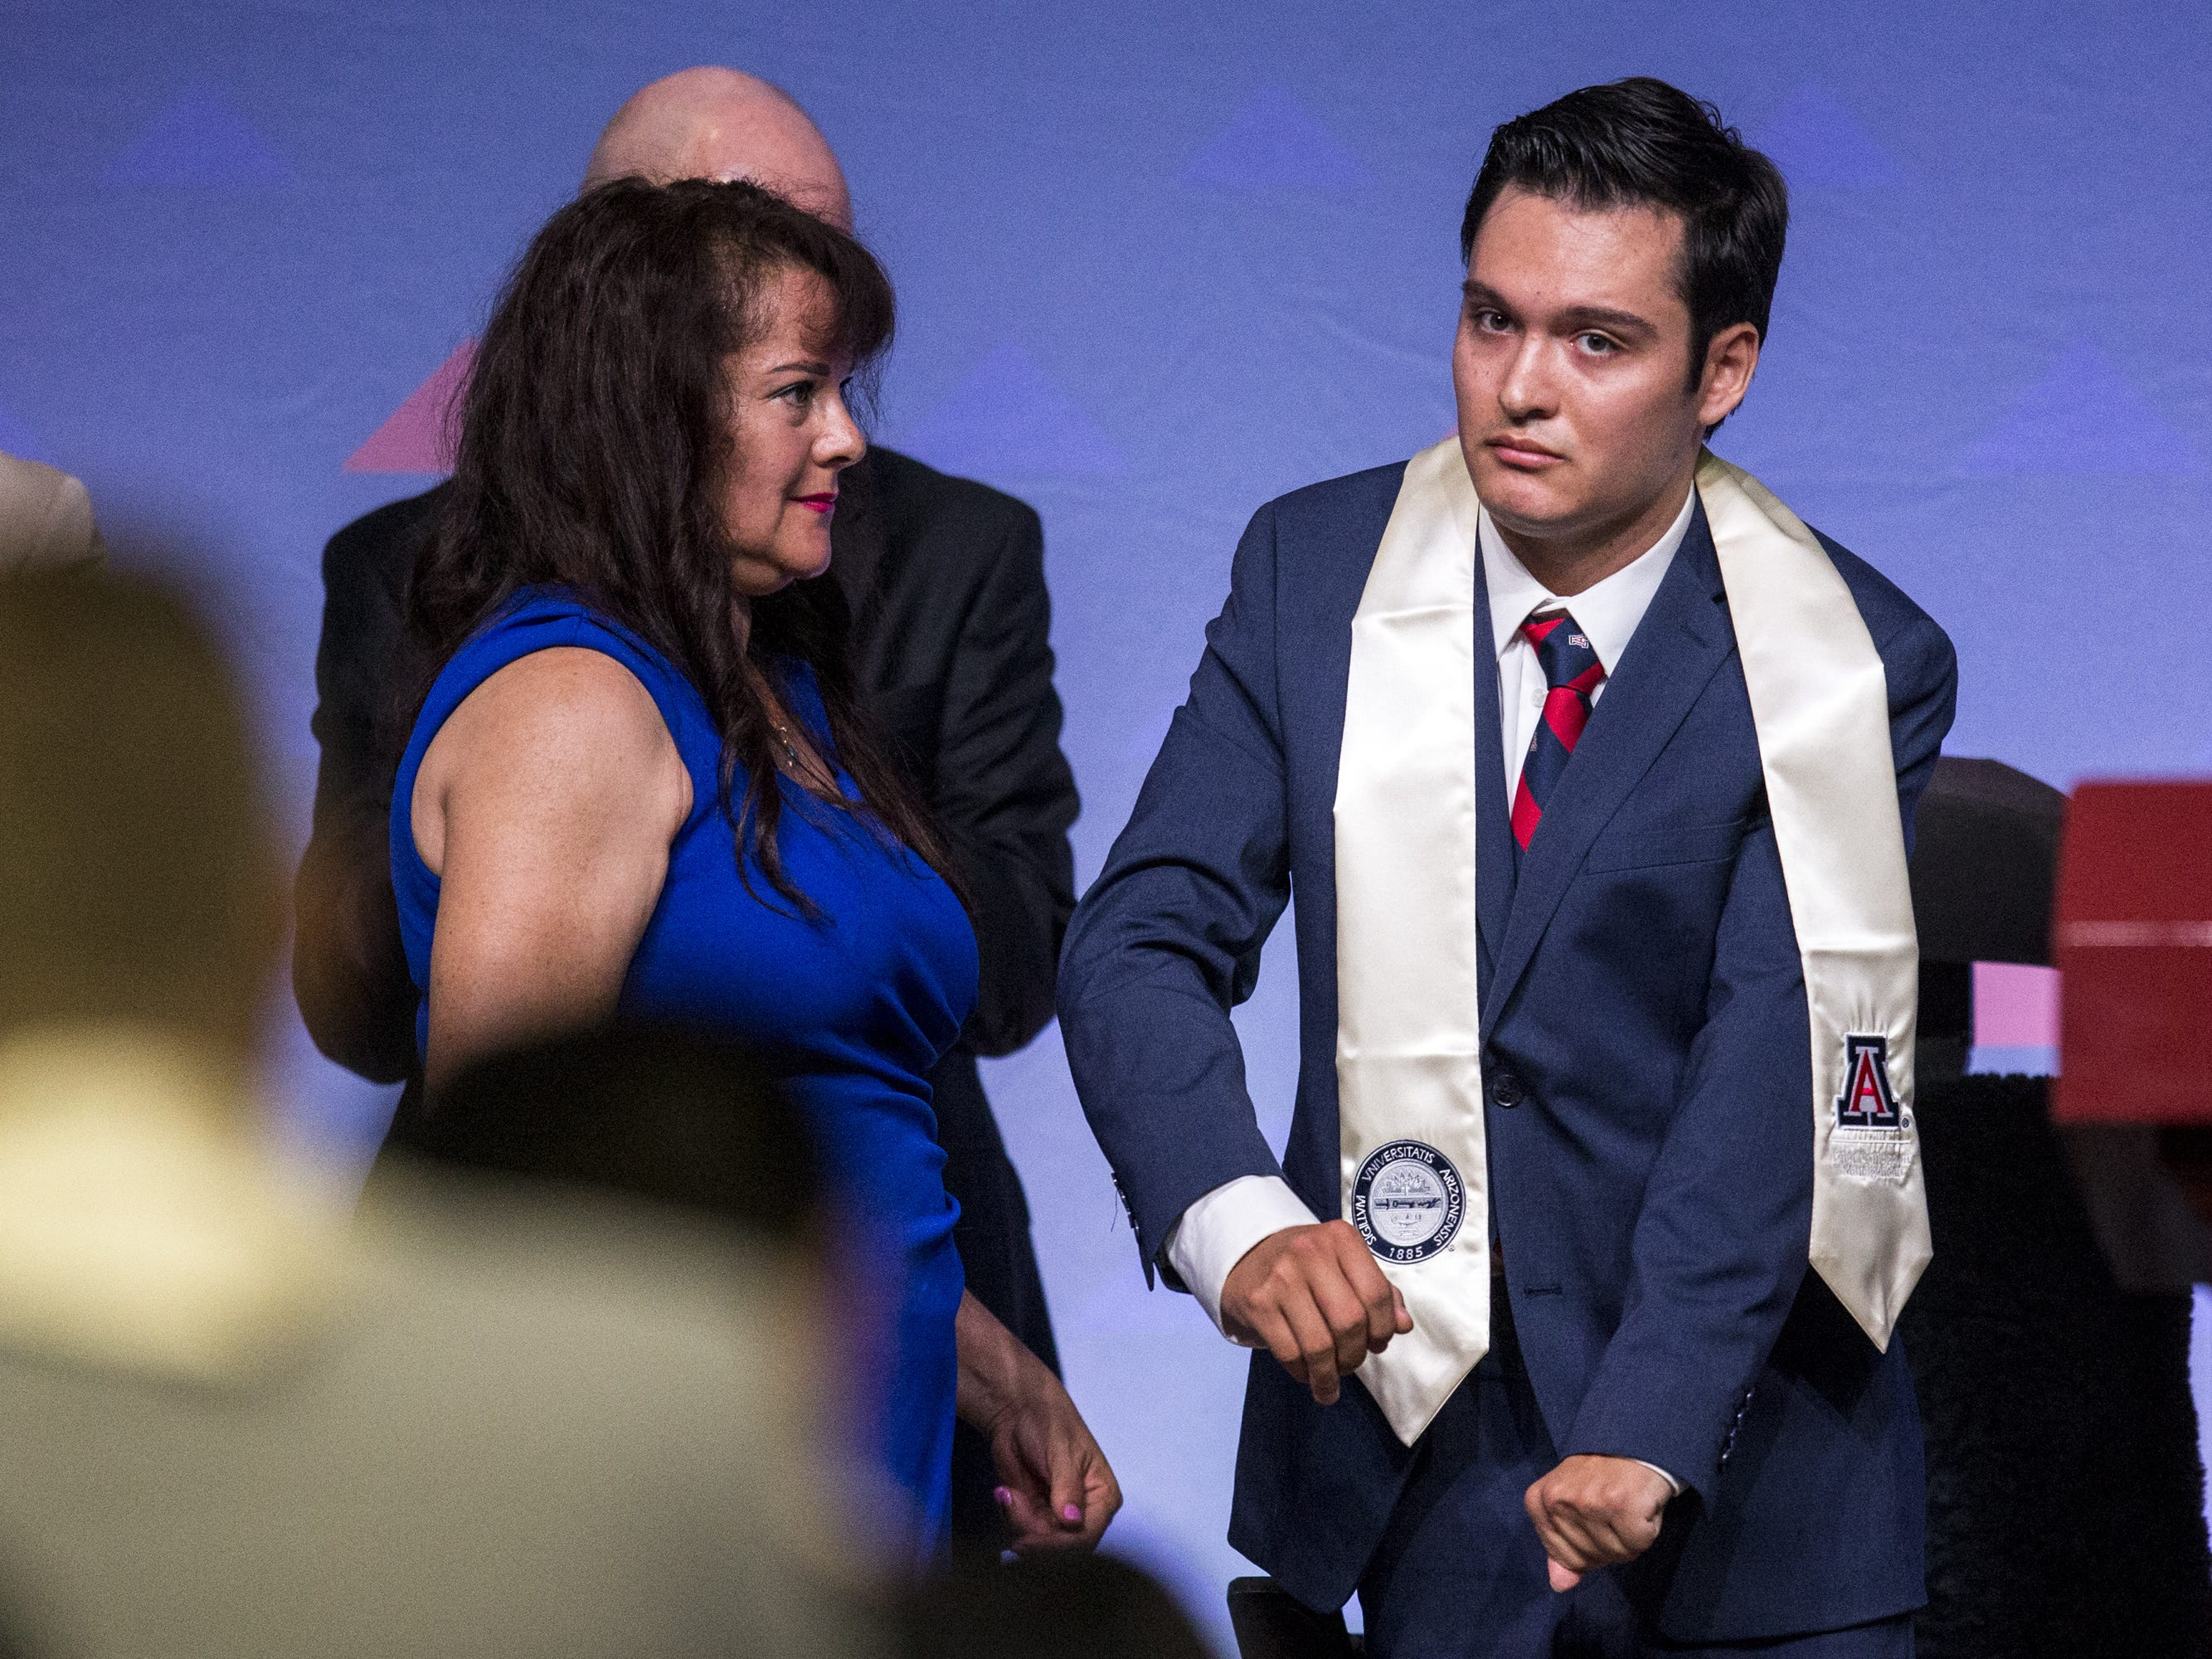 Hermelinda Bristol watches as her son, Jeffrey, 24, is recognized during University of Arizona's Eller College of Management convocation on Saturday, May 11, 2019, at McKale Memorial Center in Tucson, Ariz. Bristol, who was diagnosed with cavernous angioma as a child, has begun to learn how to walk with the help of an exoskeleton created as part of an engineering school design program.